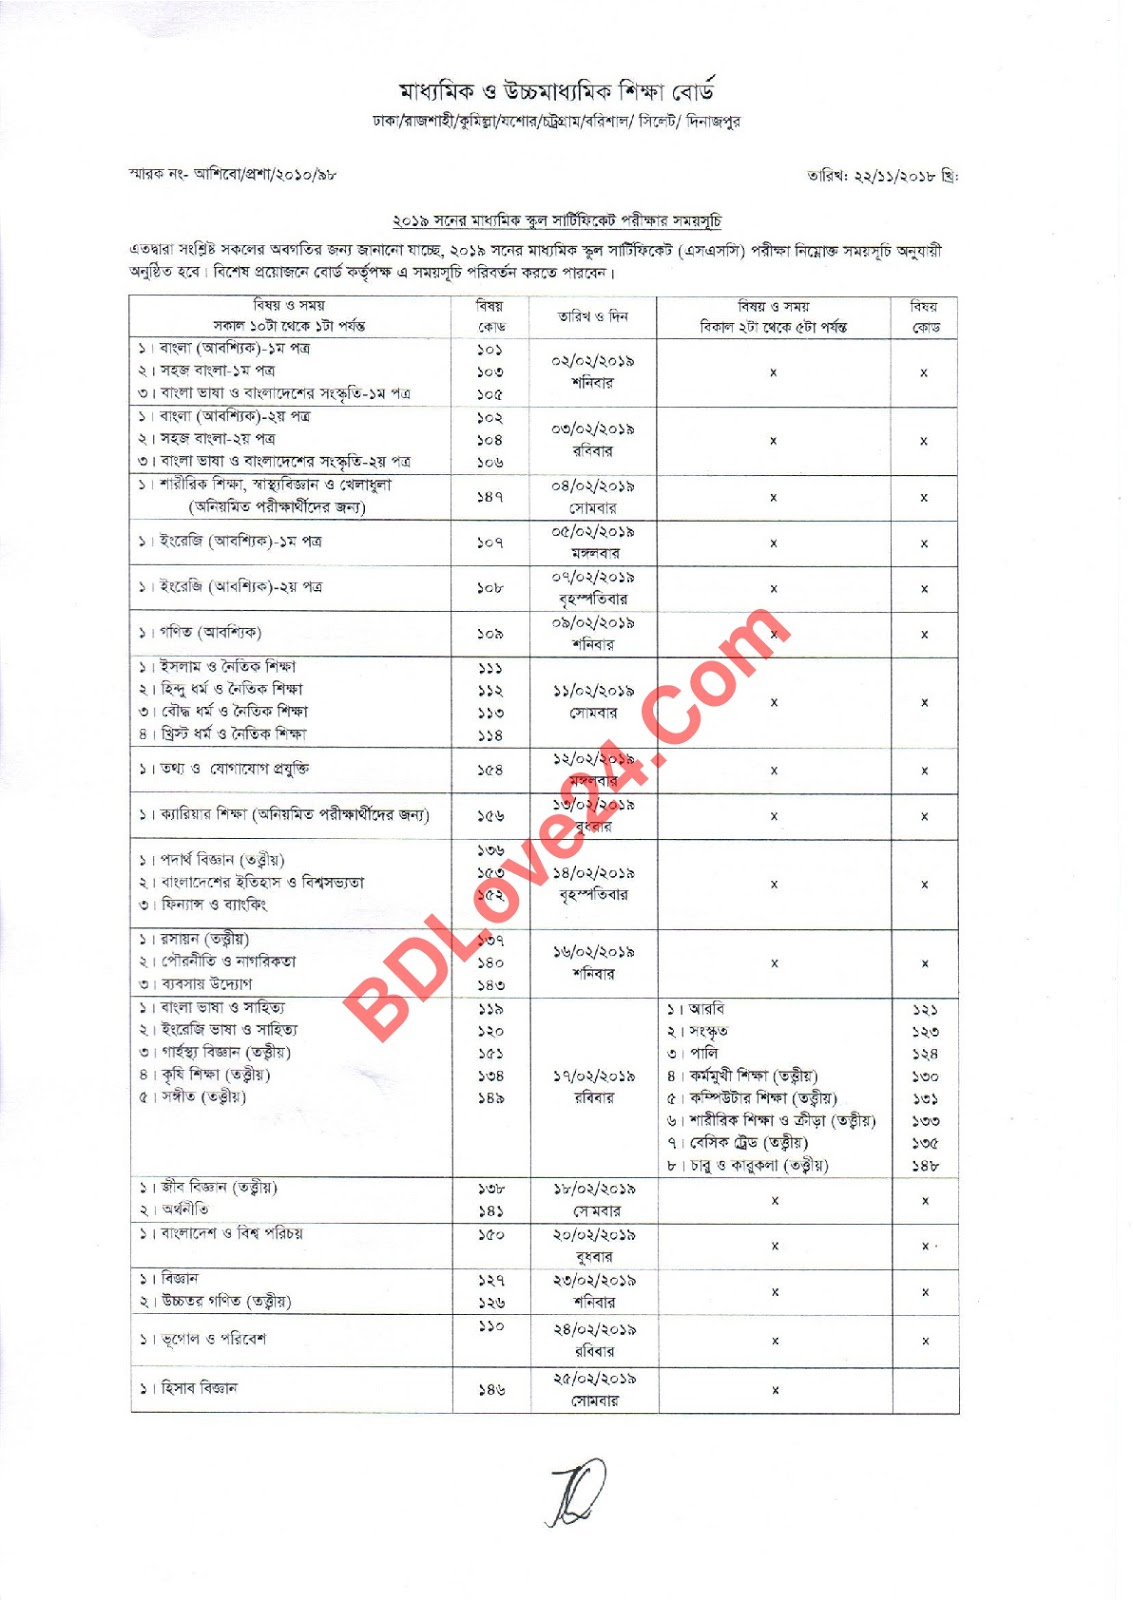 SSC%2BExam%2BRoutine%2B2019%2B%25281%2529 - SSC Exam Routine 2019,Dakhil Exam Time Table 2019,SSC and Dakhil